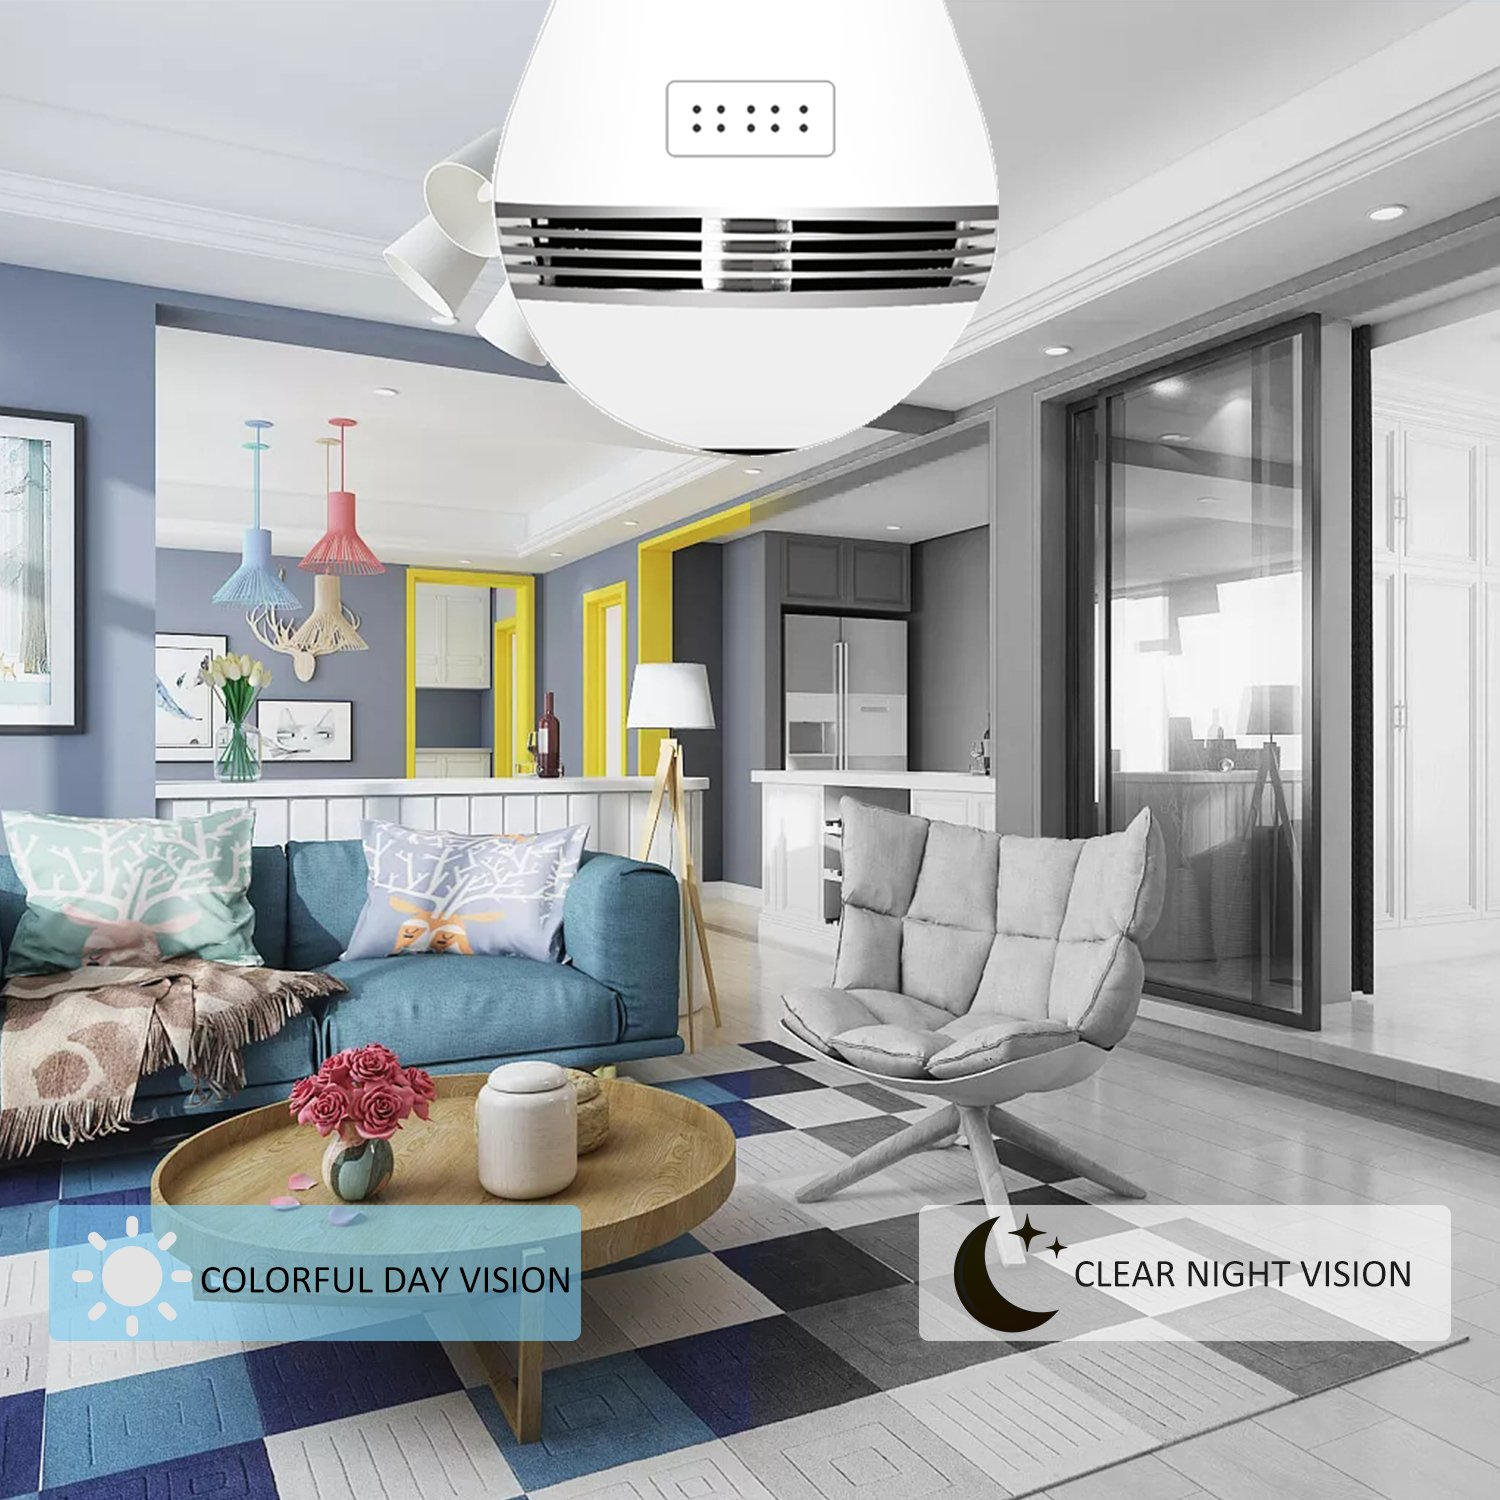 Light Bulb Camera VR Panoramic IP Wireless WiFi Camera Include 16GB TFCard with Cloud Store 360 Degree Fisheye Lens Lighting Lamp for Home Security Camera Bulb 960P HD E27 LED Dimmable Lamp by Looline (Image #4)